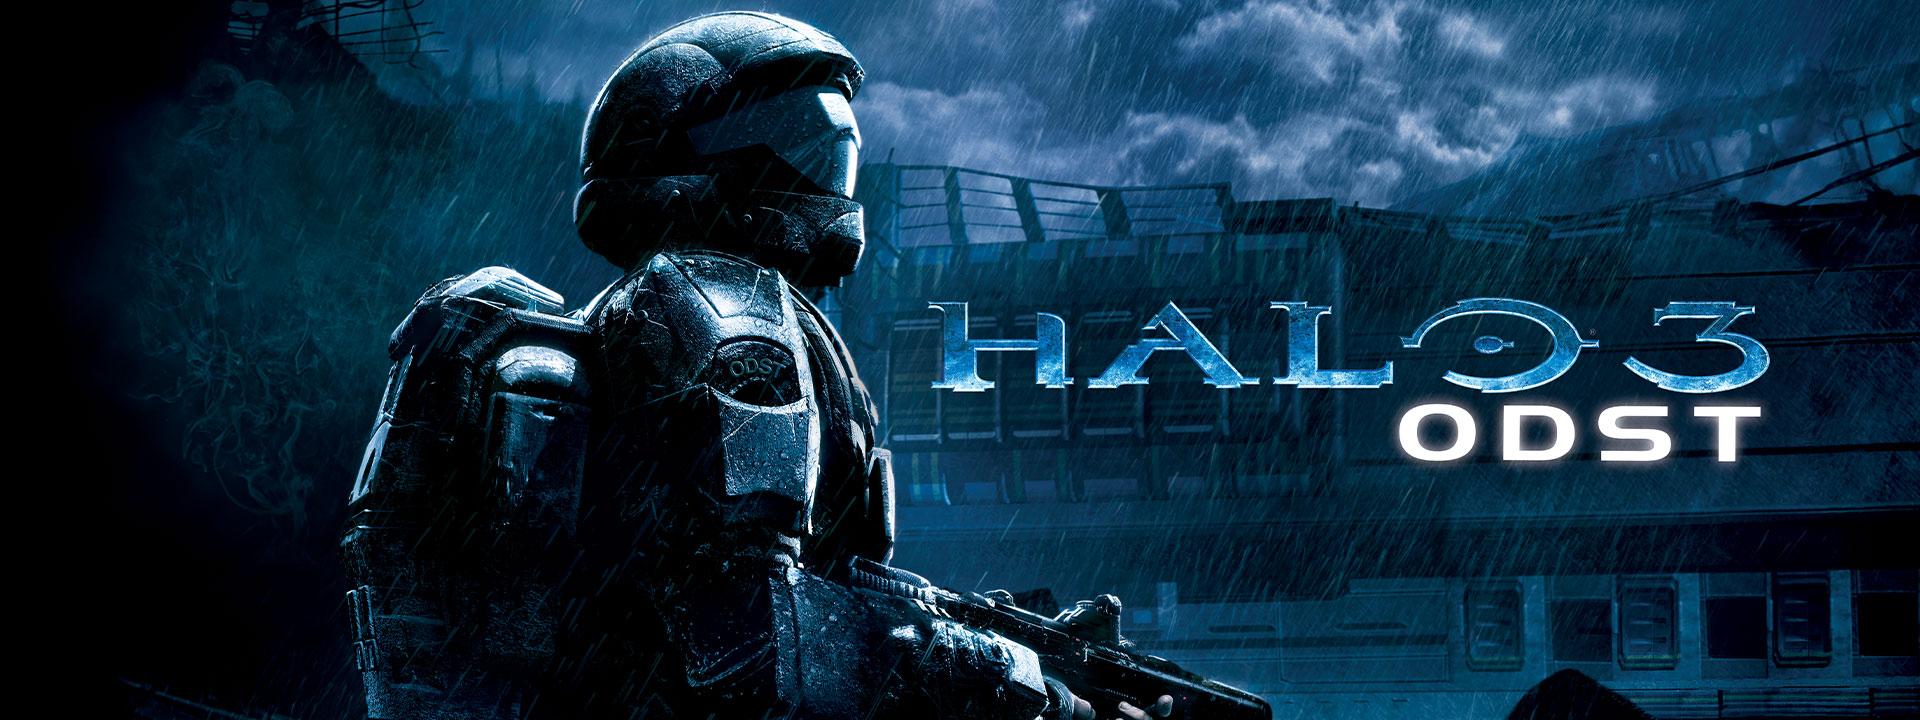 Halo 3 ODST, Halo soldier stands under pouring rain, abandoned building background